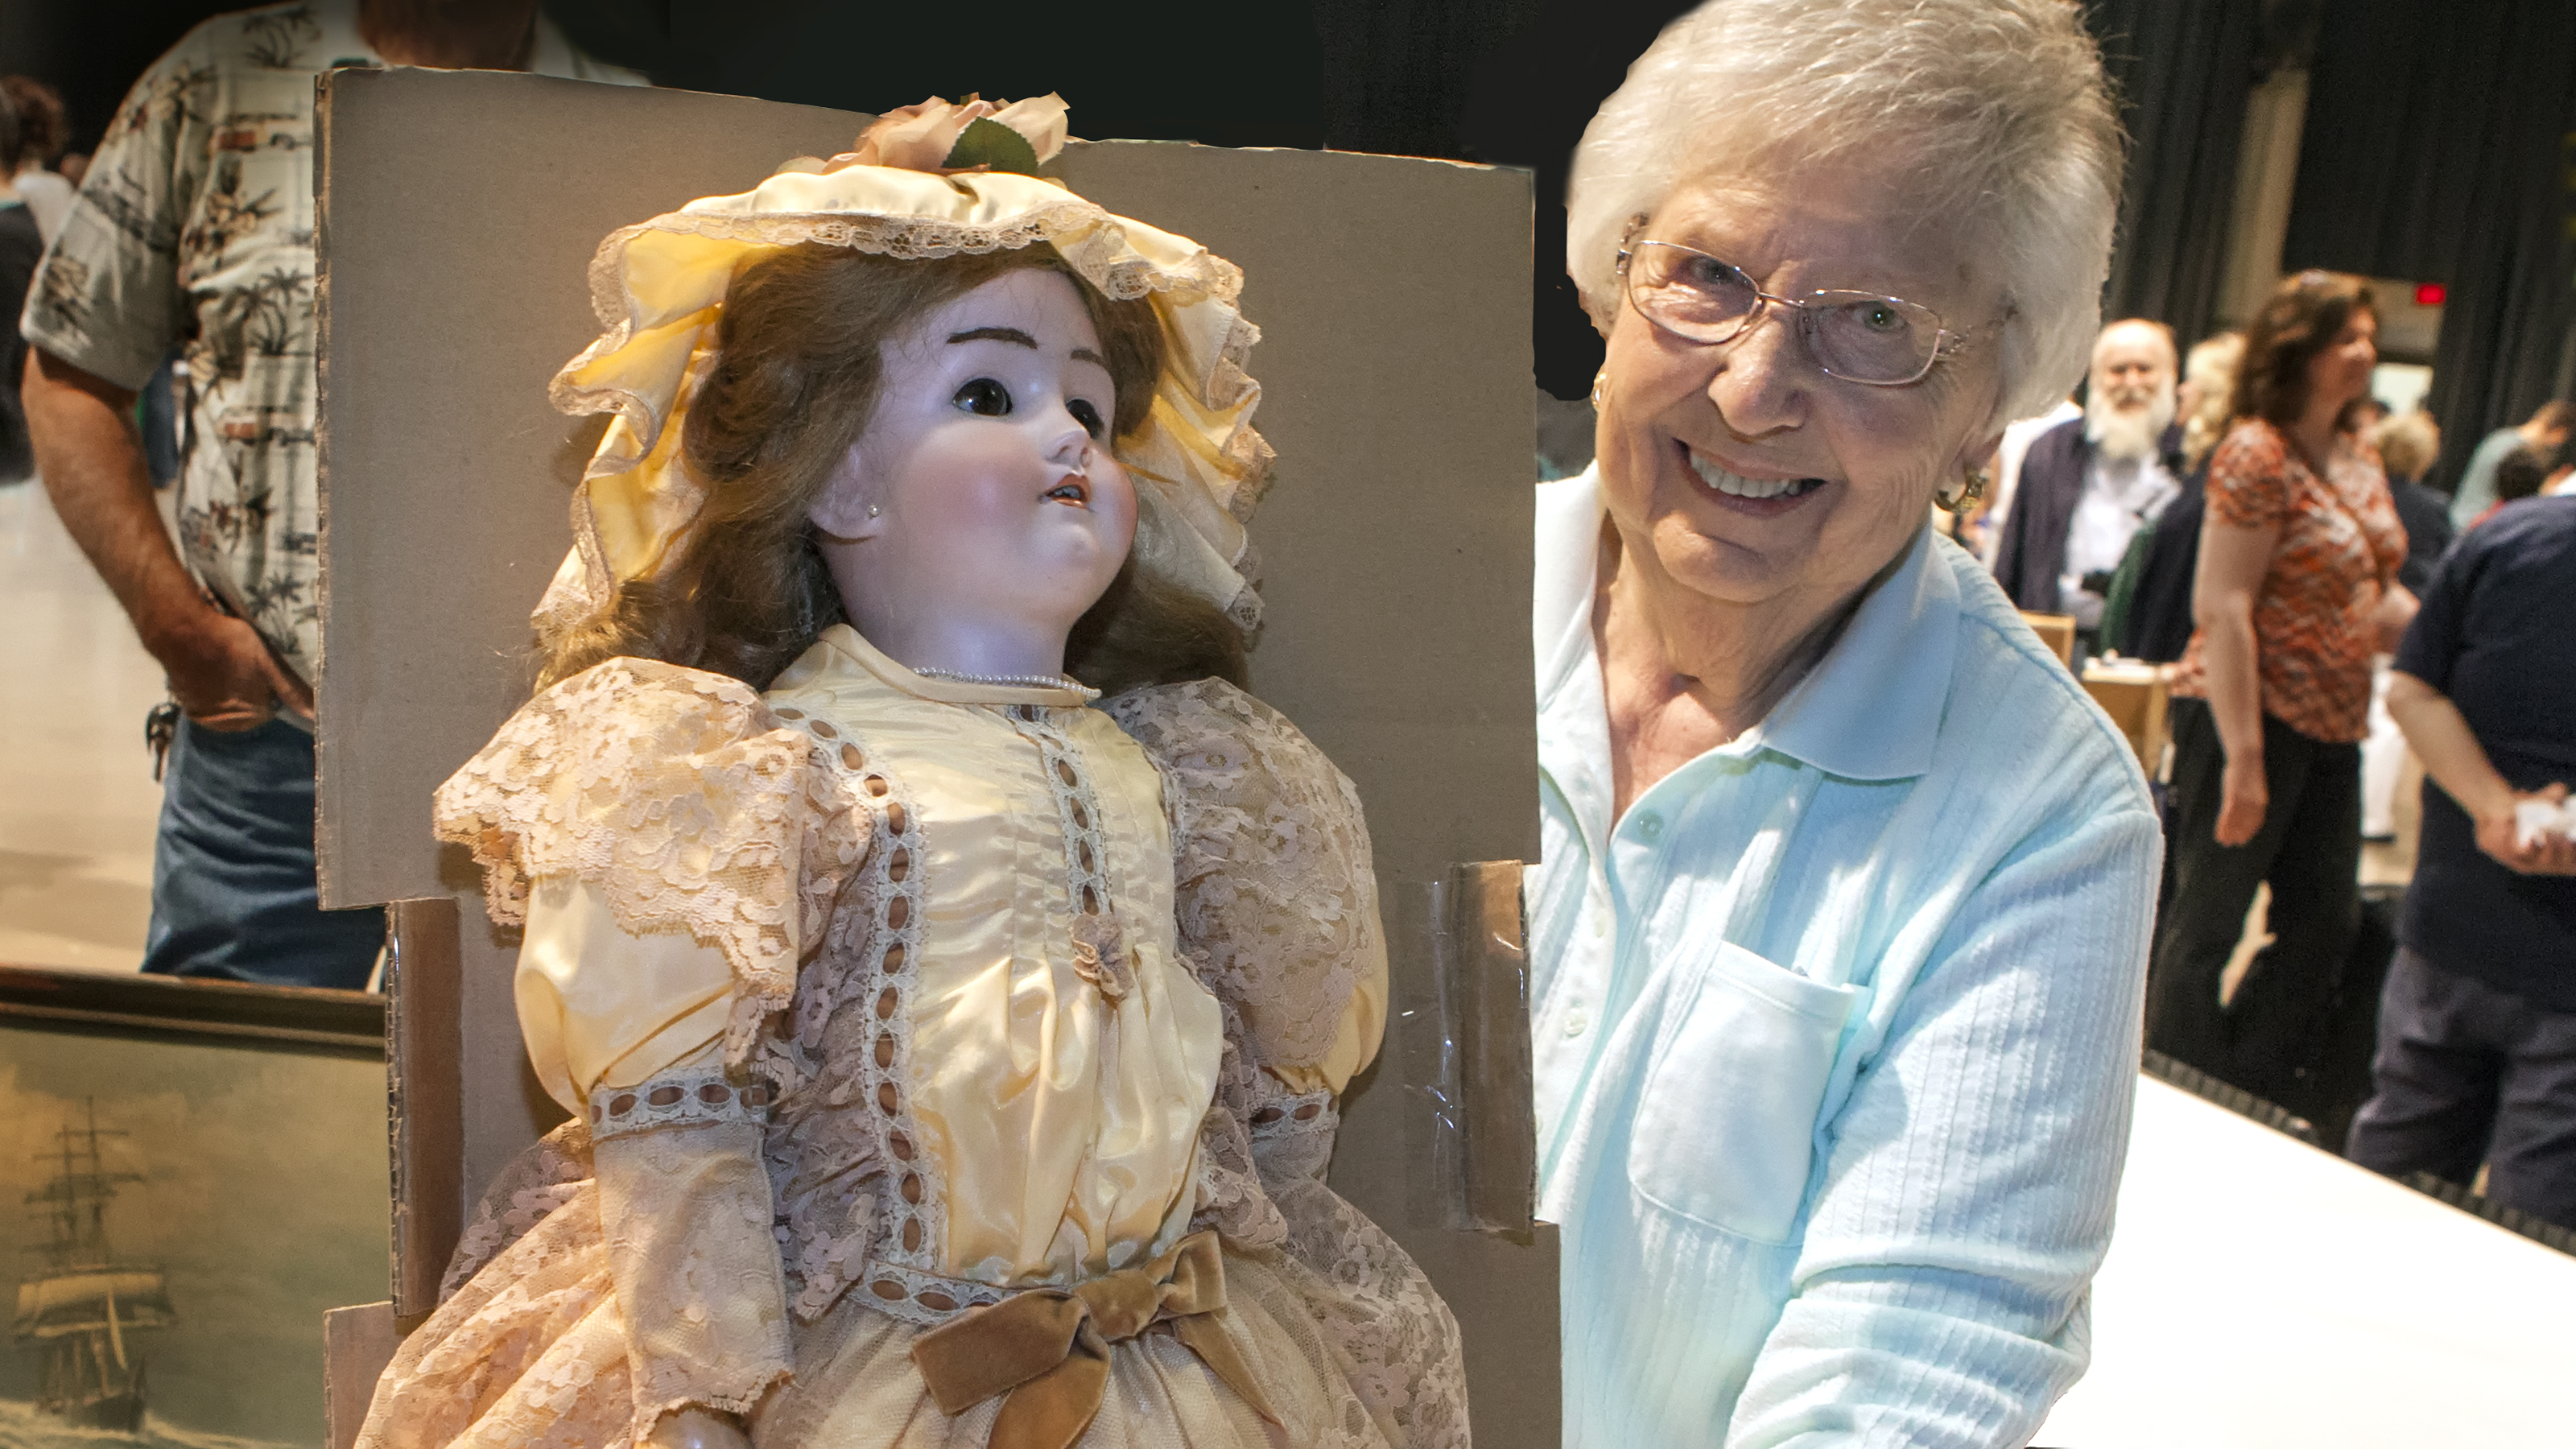 With that smile on her face, it appears she may have gotten some good news about the value of her antue doll at the WNED | WBFO Antiques Home Show